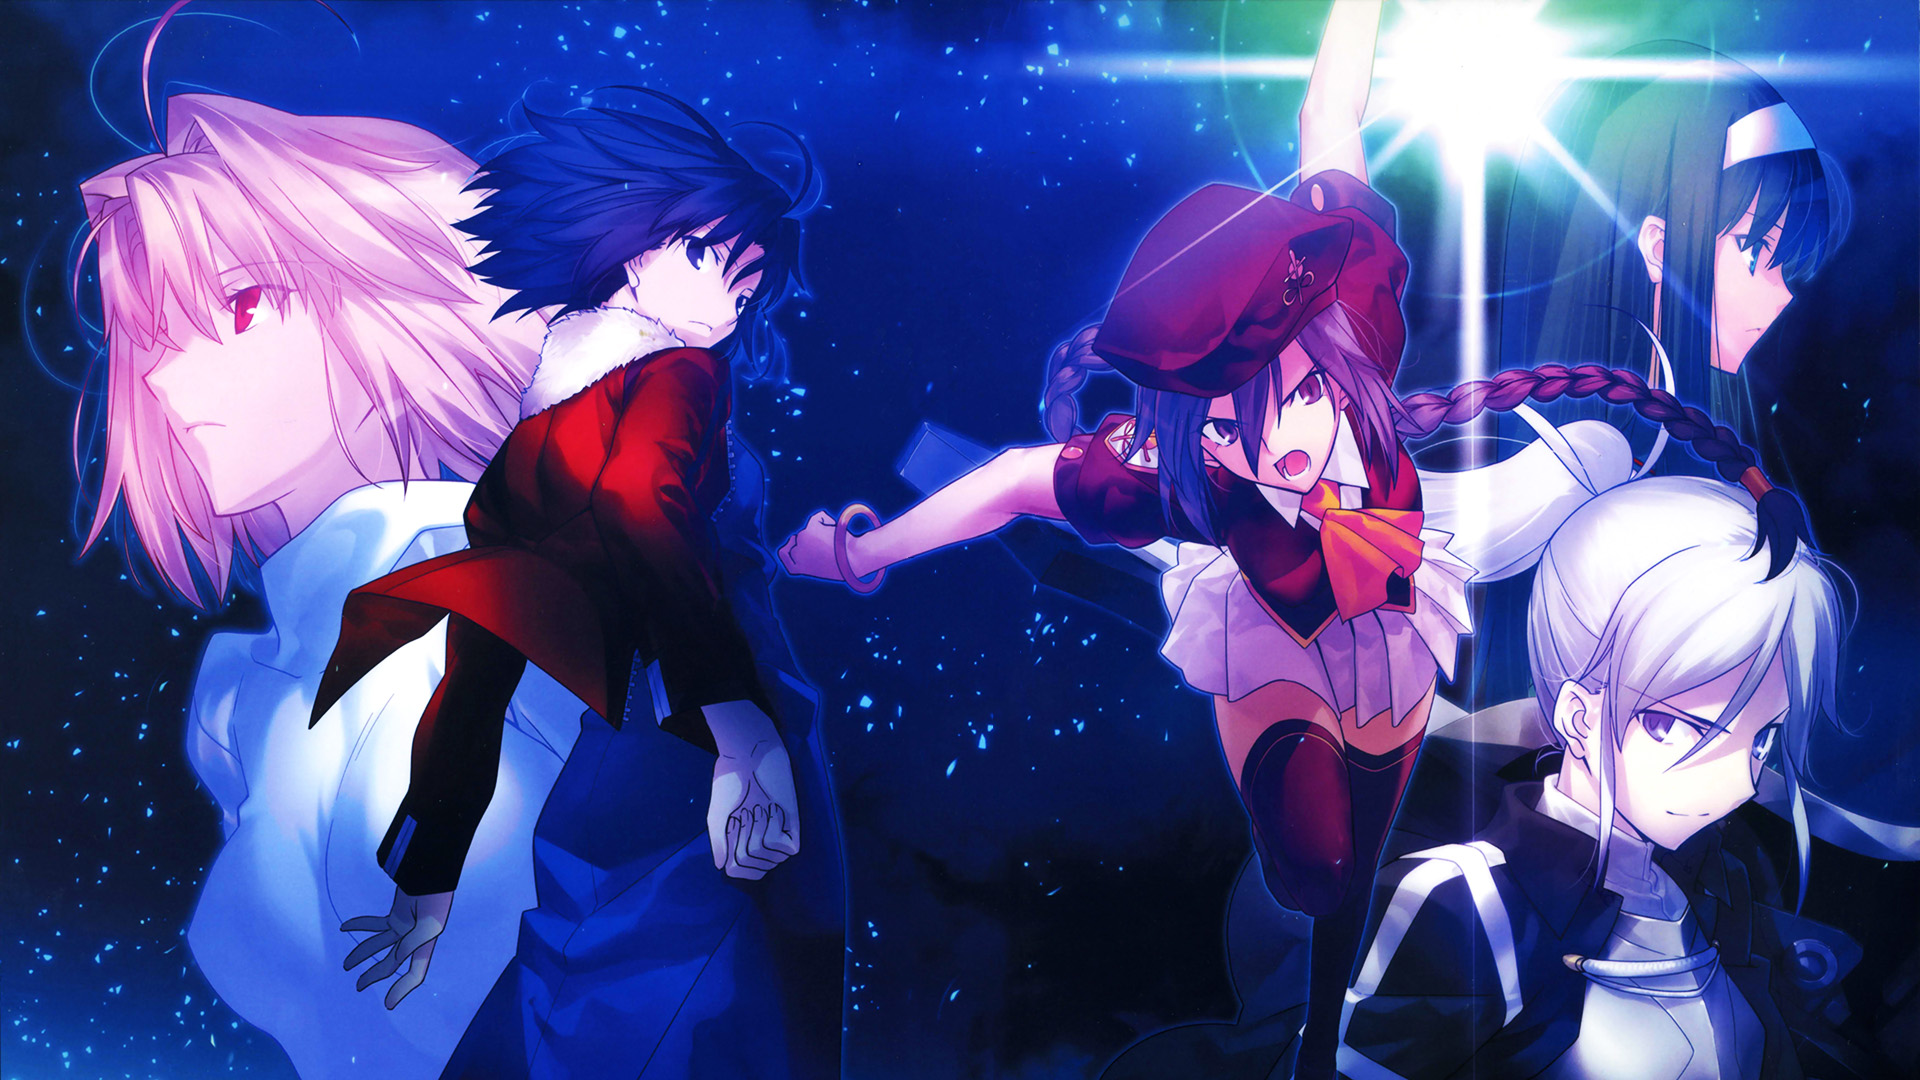 Melty Blood Actress Again Current Code Full HD Wallpaper ...